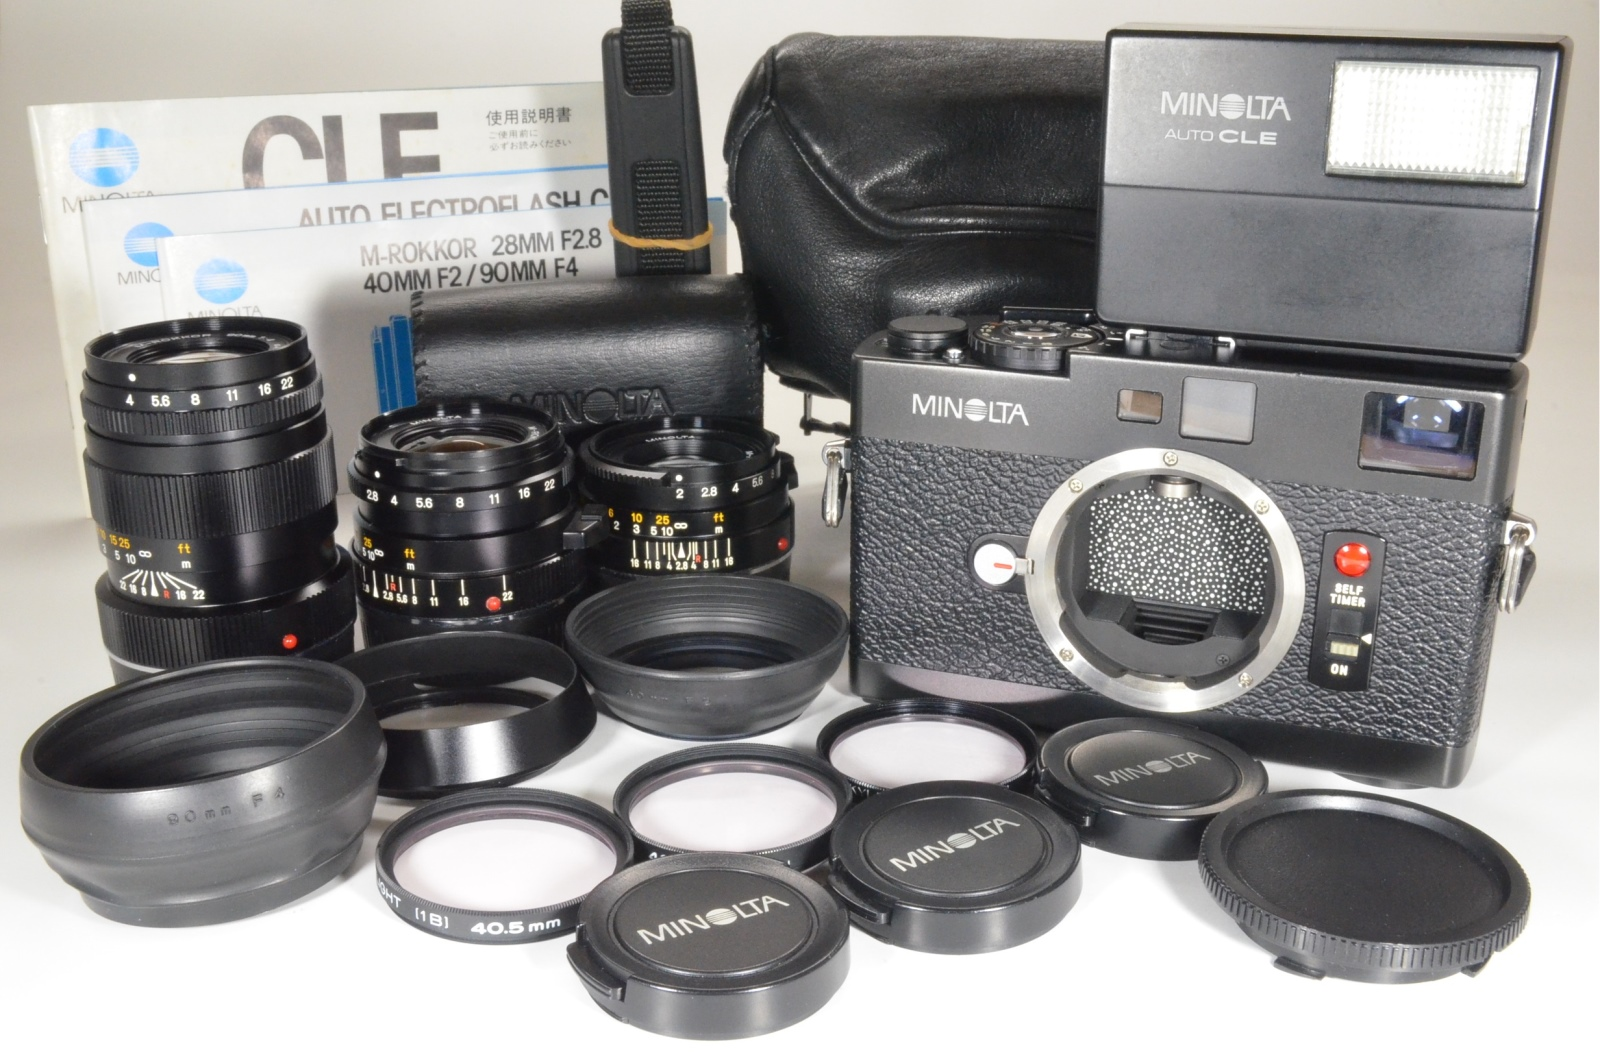 minolta cle film camera with lens m-rokkor 40mm f2, 28mm f2.8, 90mm f4 and flash